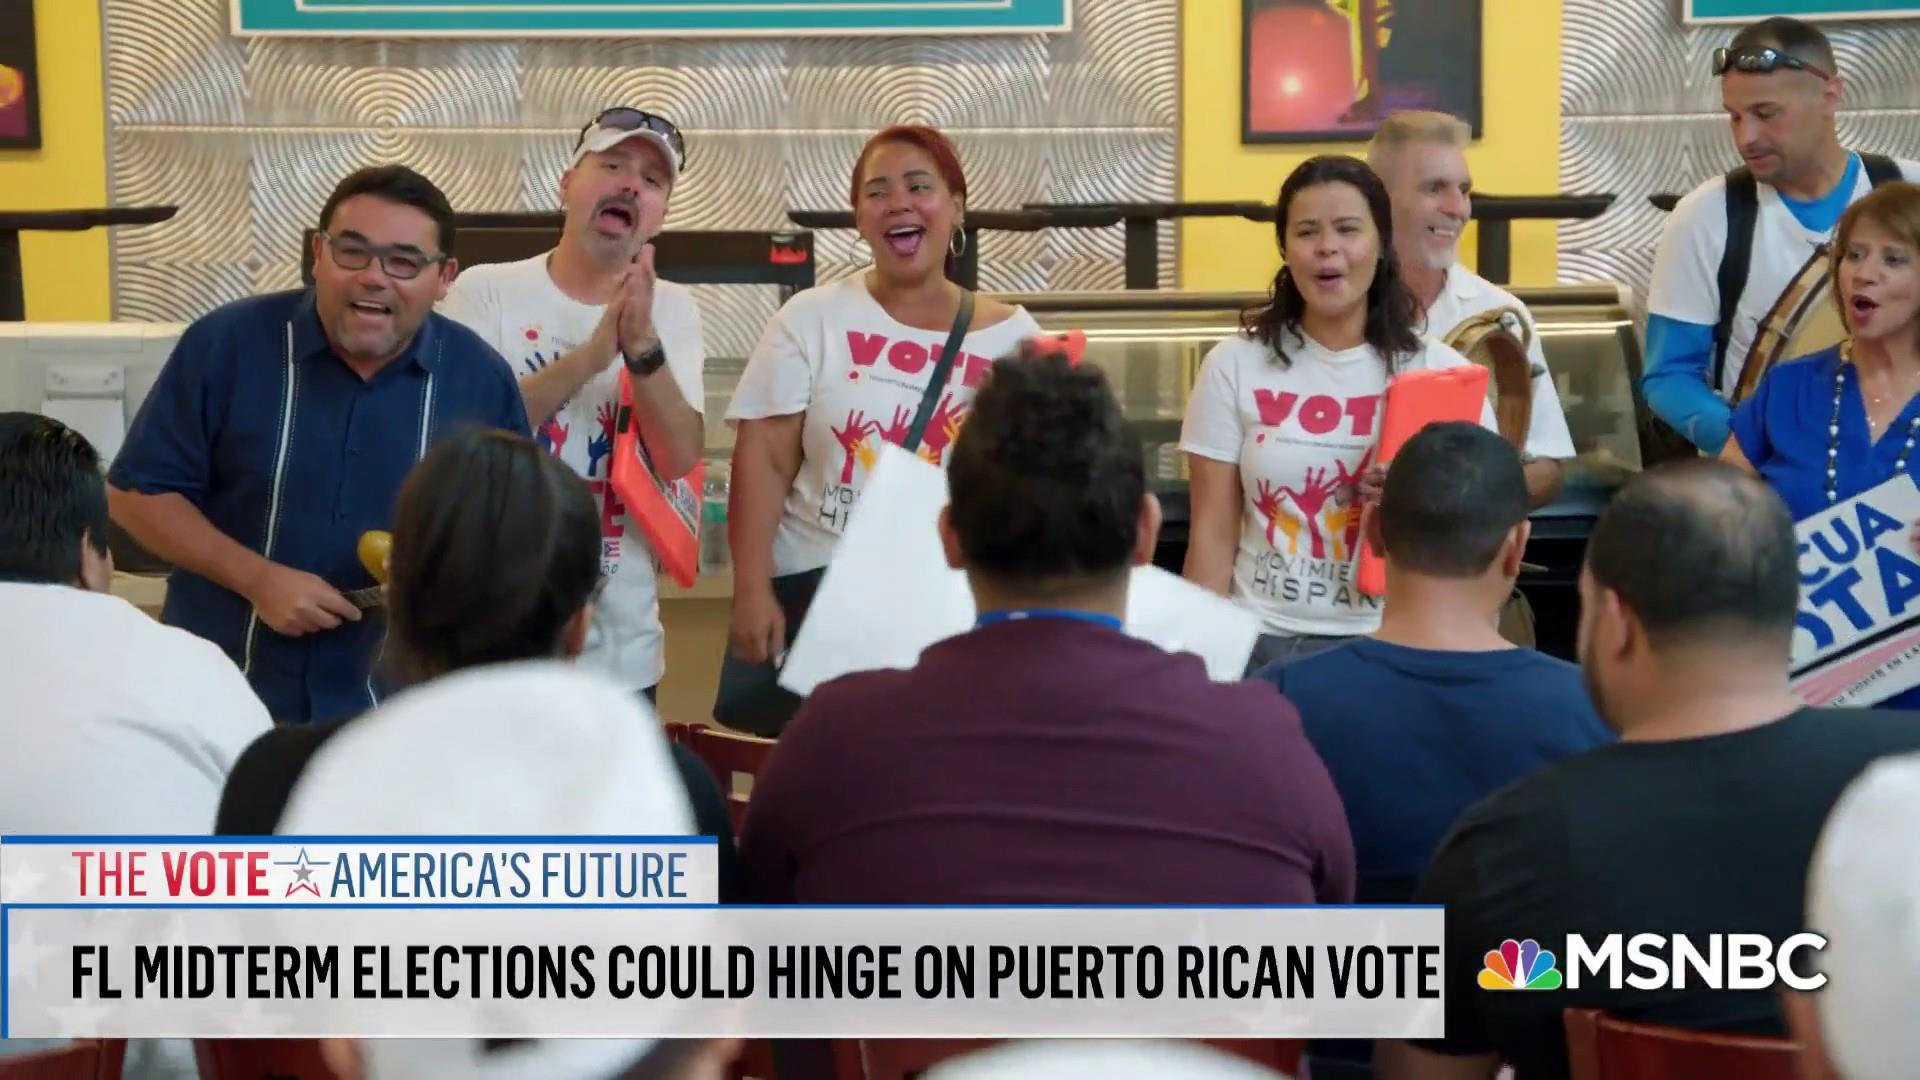 How could Puerto Rican voters affect the midterms?